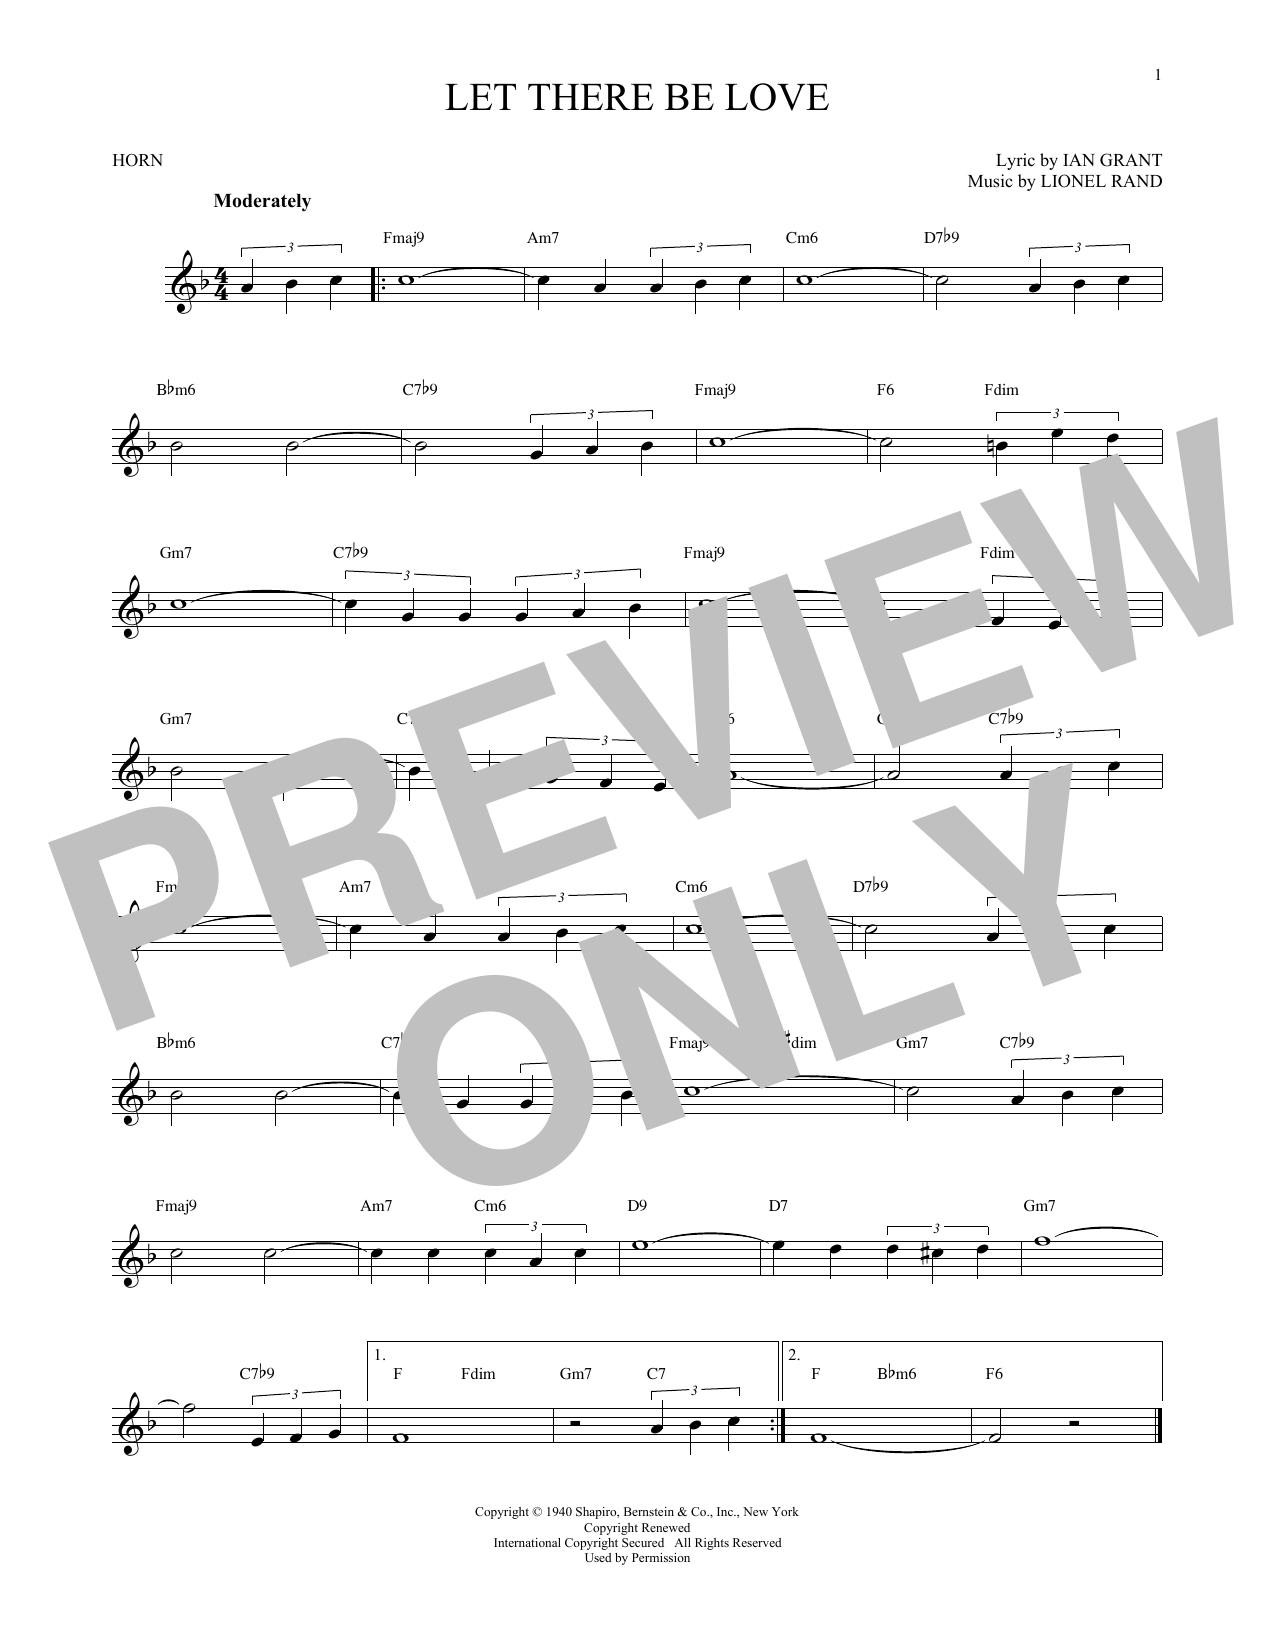 Lionel Rand Let There Be Love sheet music notes and chords. Download Printable PDF.